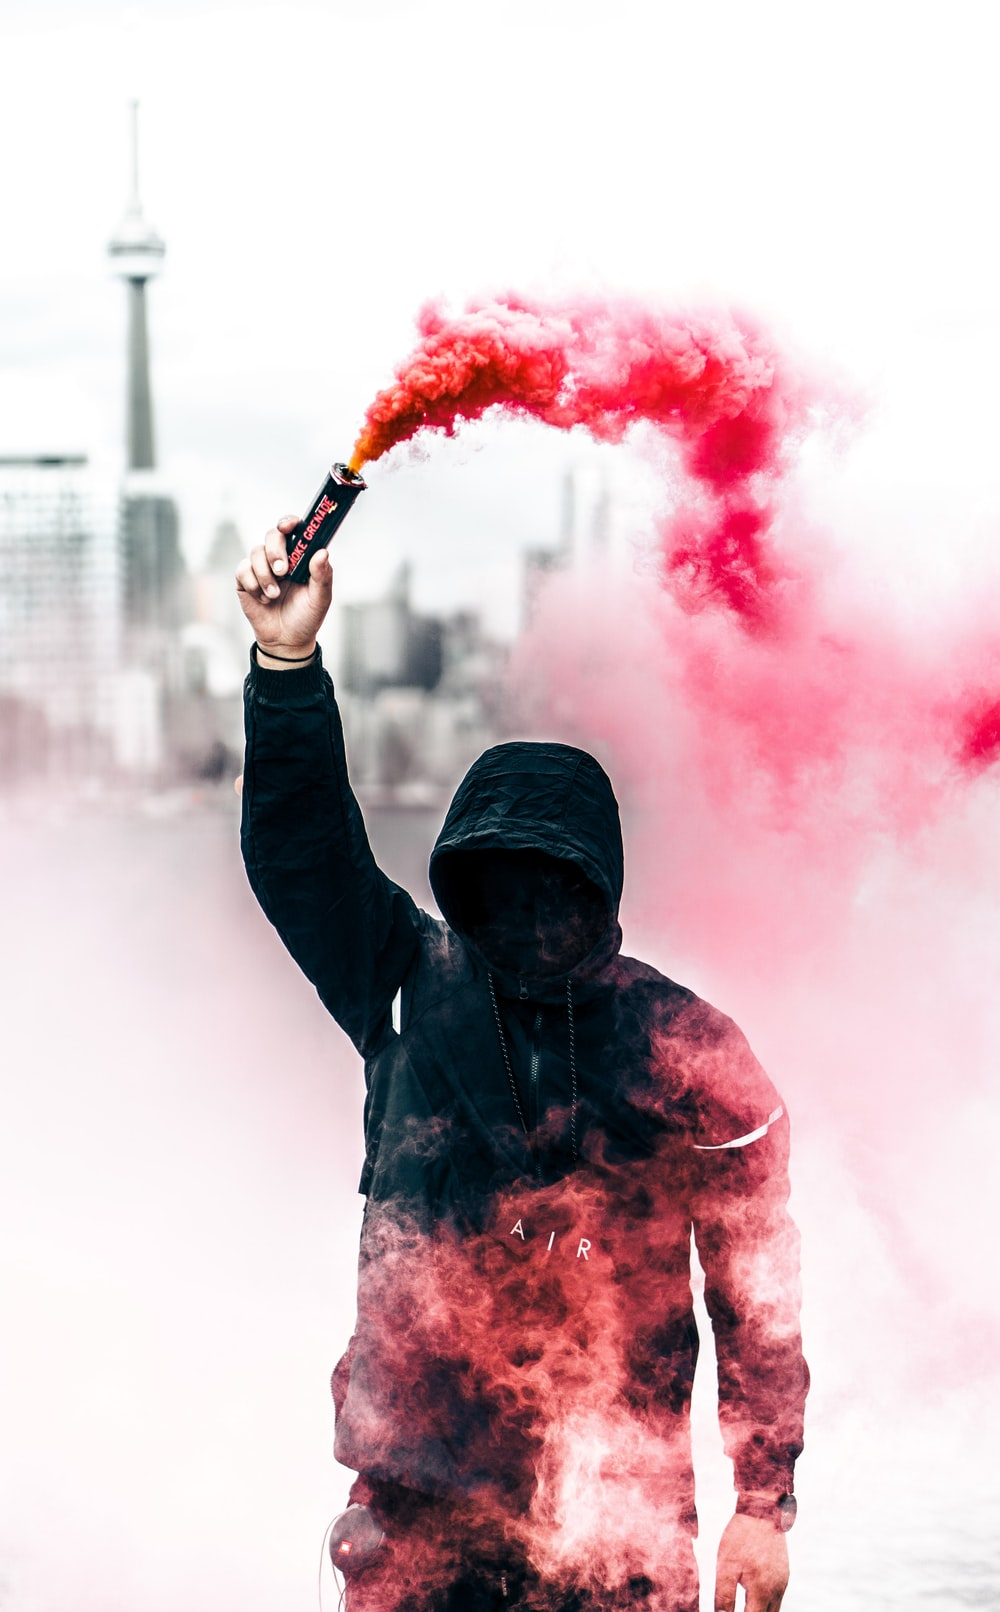 person wearing black and red hoodie holding smoke bomb